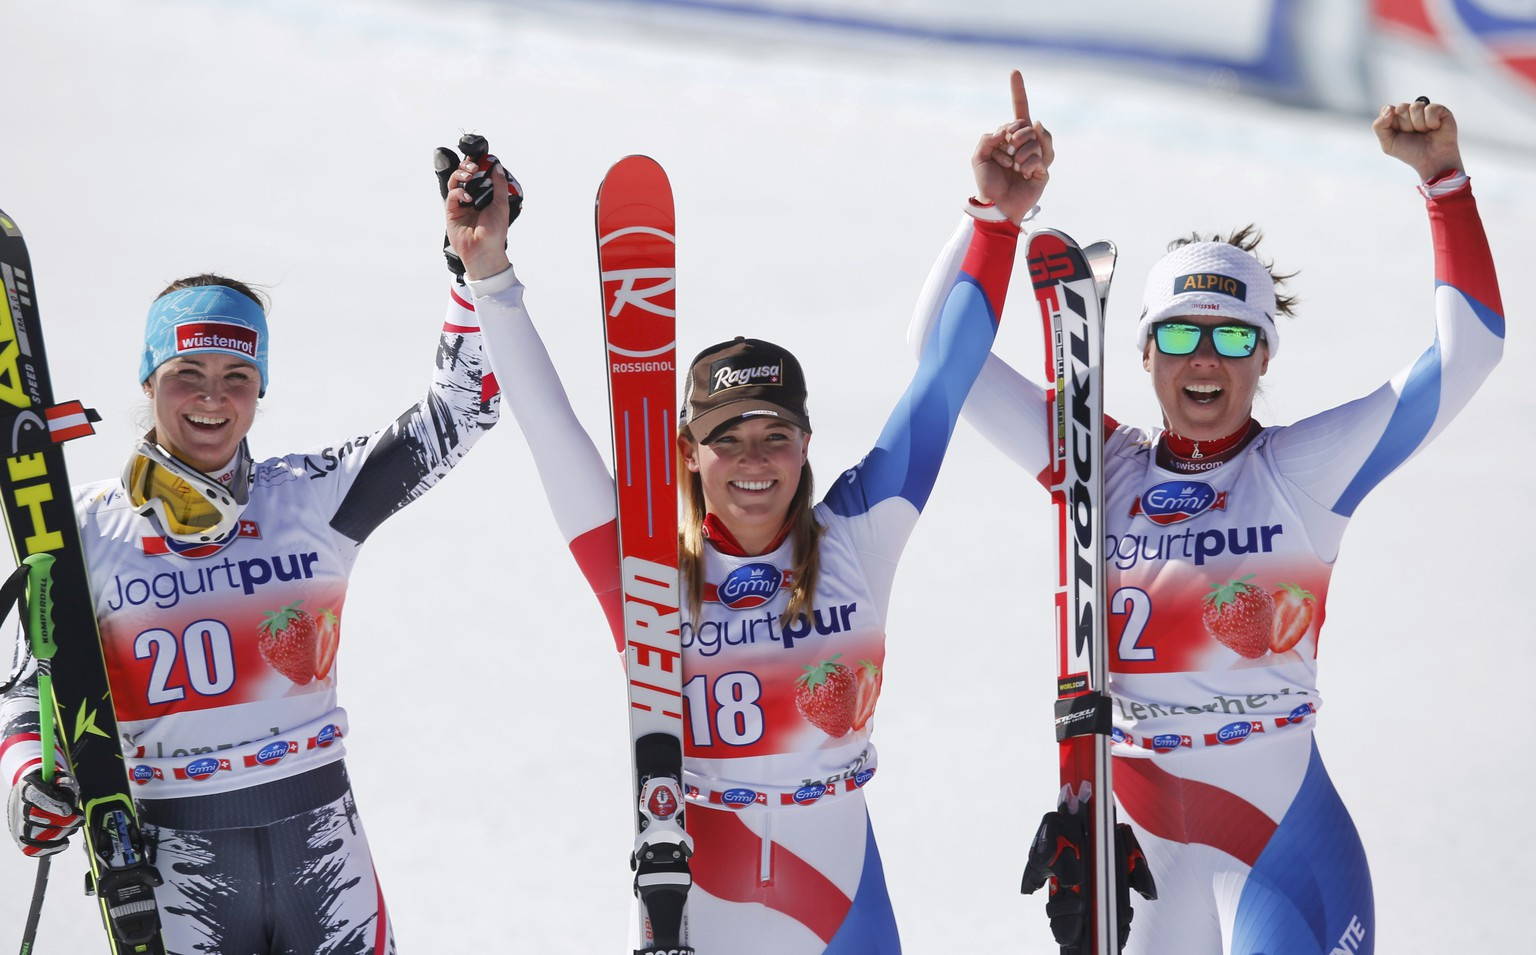 Second placed Elisabeth Goergl of Austria, winner Lara Gut of Switzerland and third placed Fraenzi Aufdenblatten of Switzerland (L-R) celebrate after the women's downhill event during the FIS Alpine Skiing World Cup finals in the Swiss ski resort of Lenzerheide March 12, 2014.             REUTERS/Leonhard Foeger (SWITZERLAND  - Tags: SPORT SKIING)